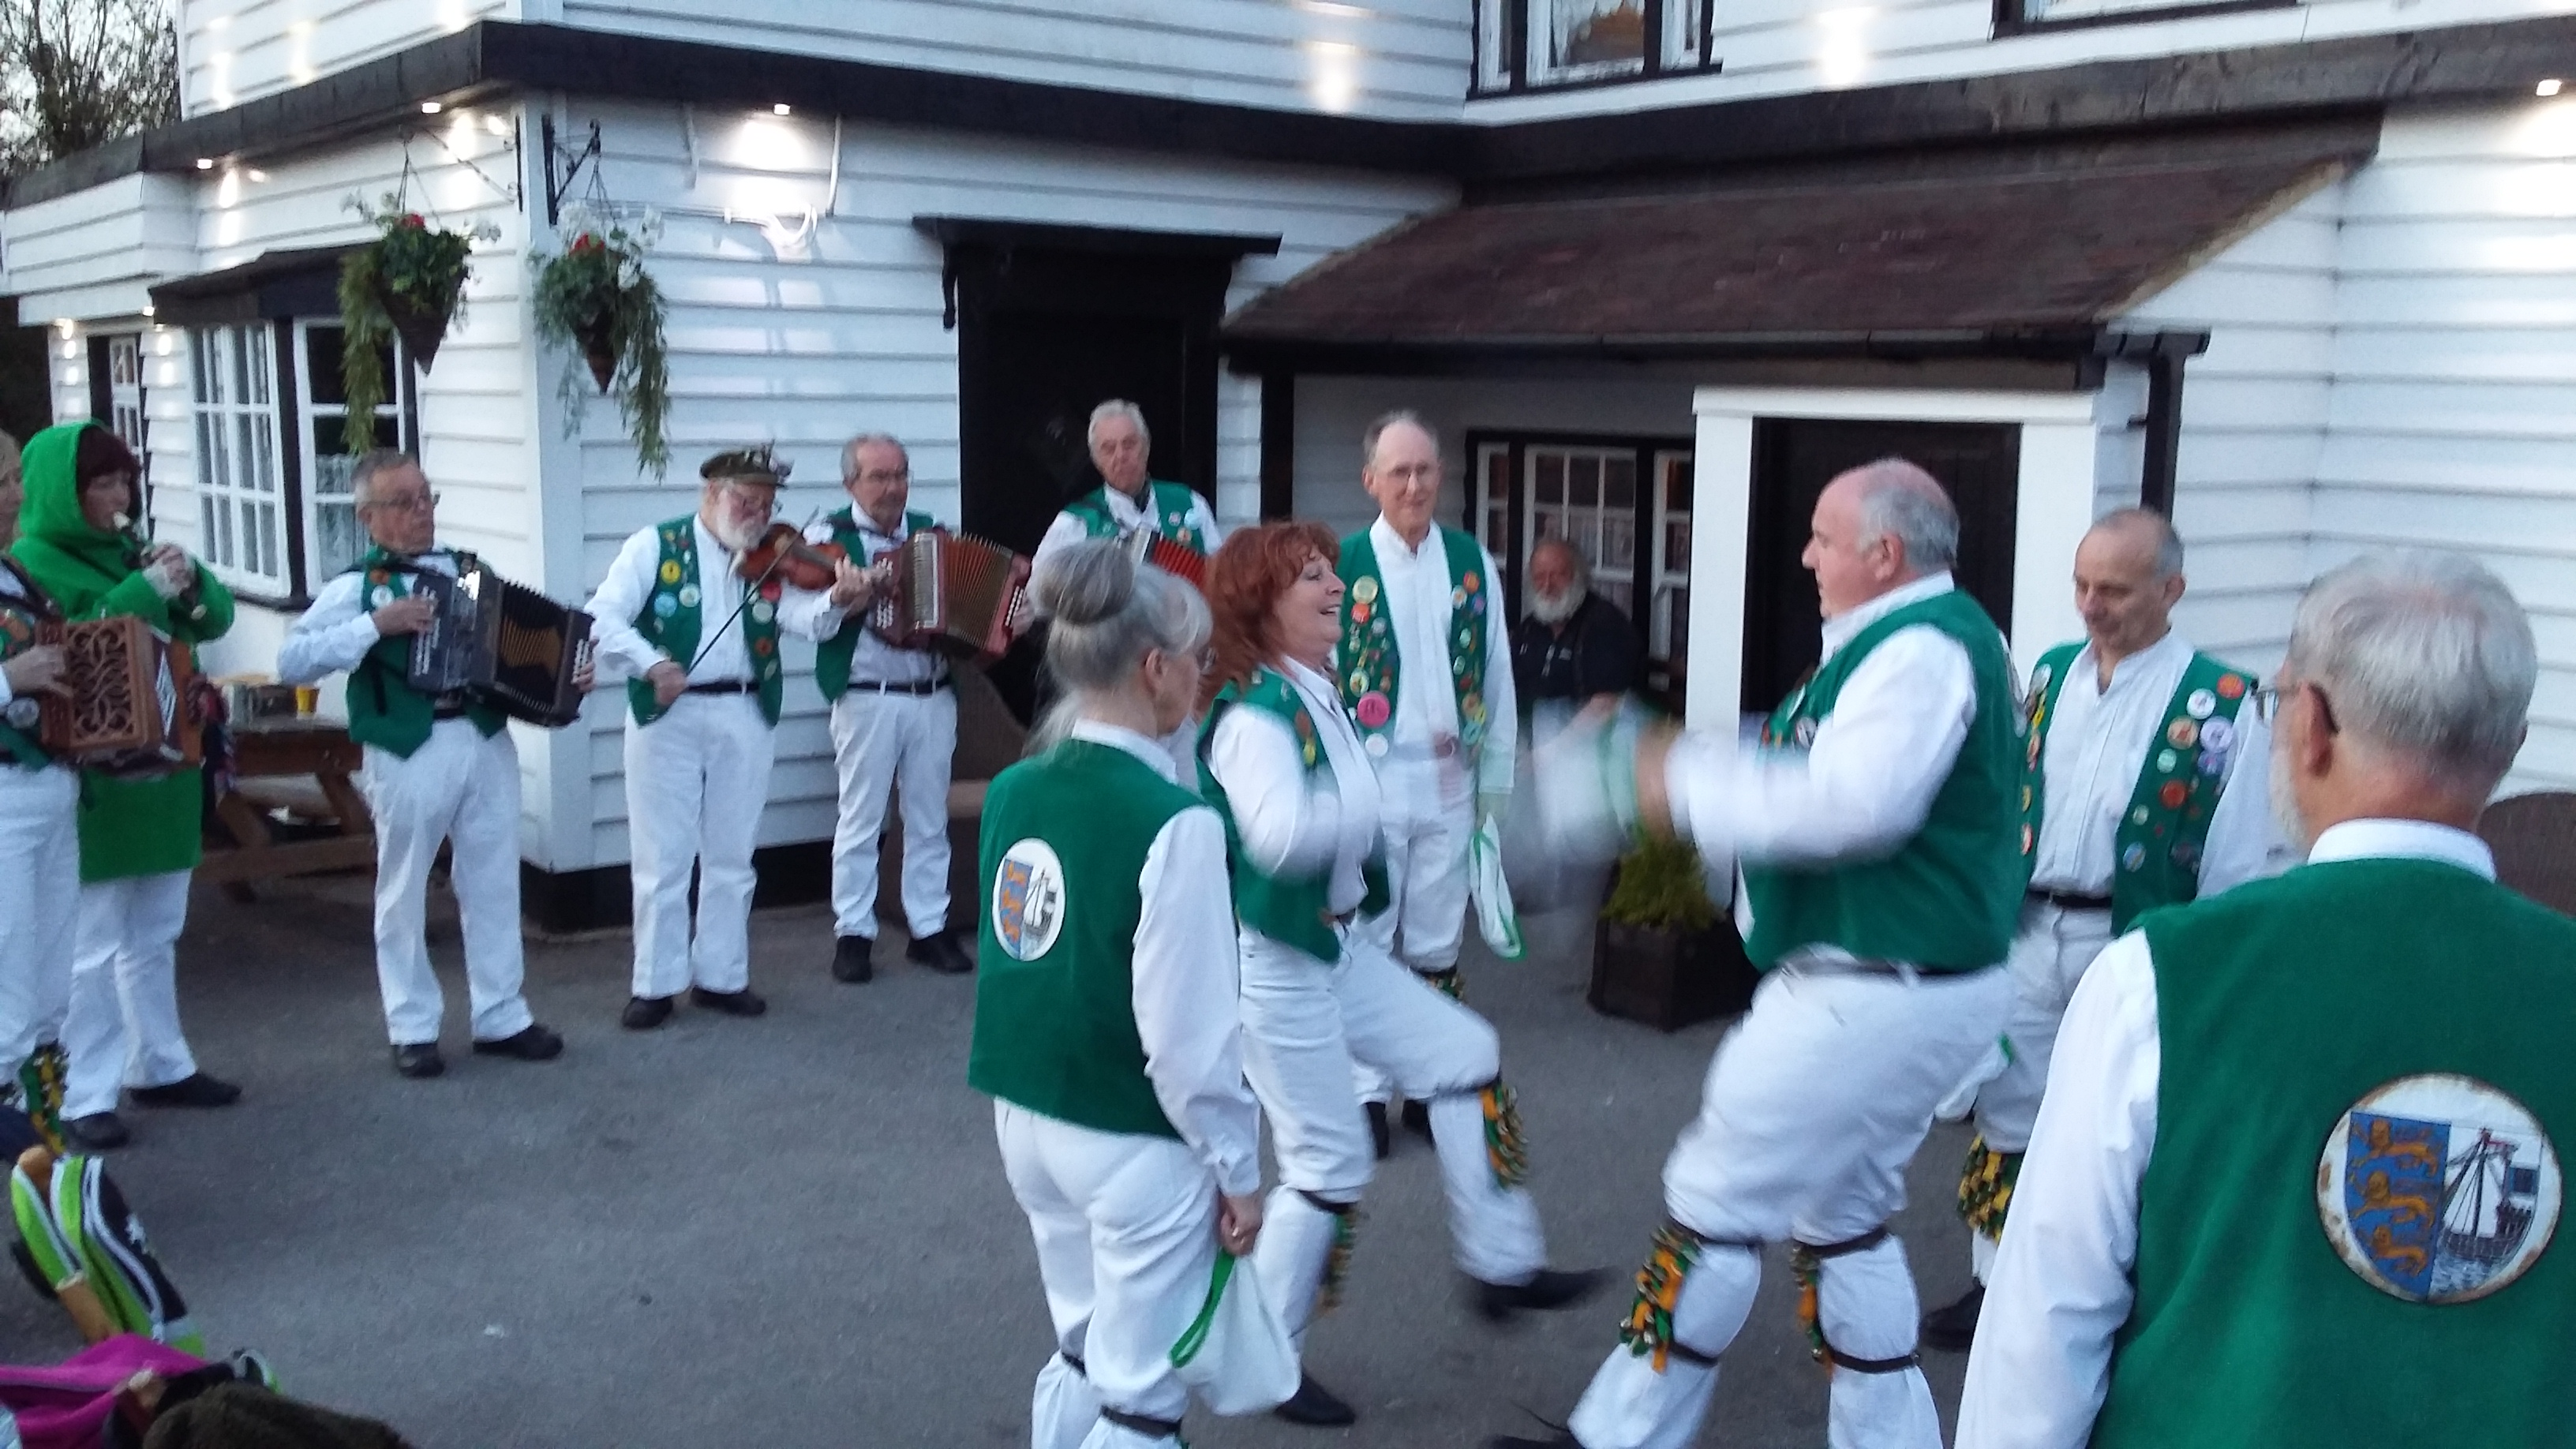 Ferry Boat Inn N Fambridge 3rd May Opinvsscir Download The Spice File